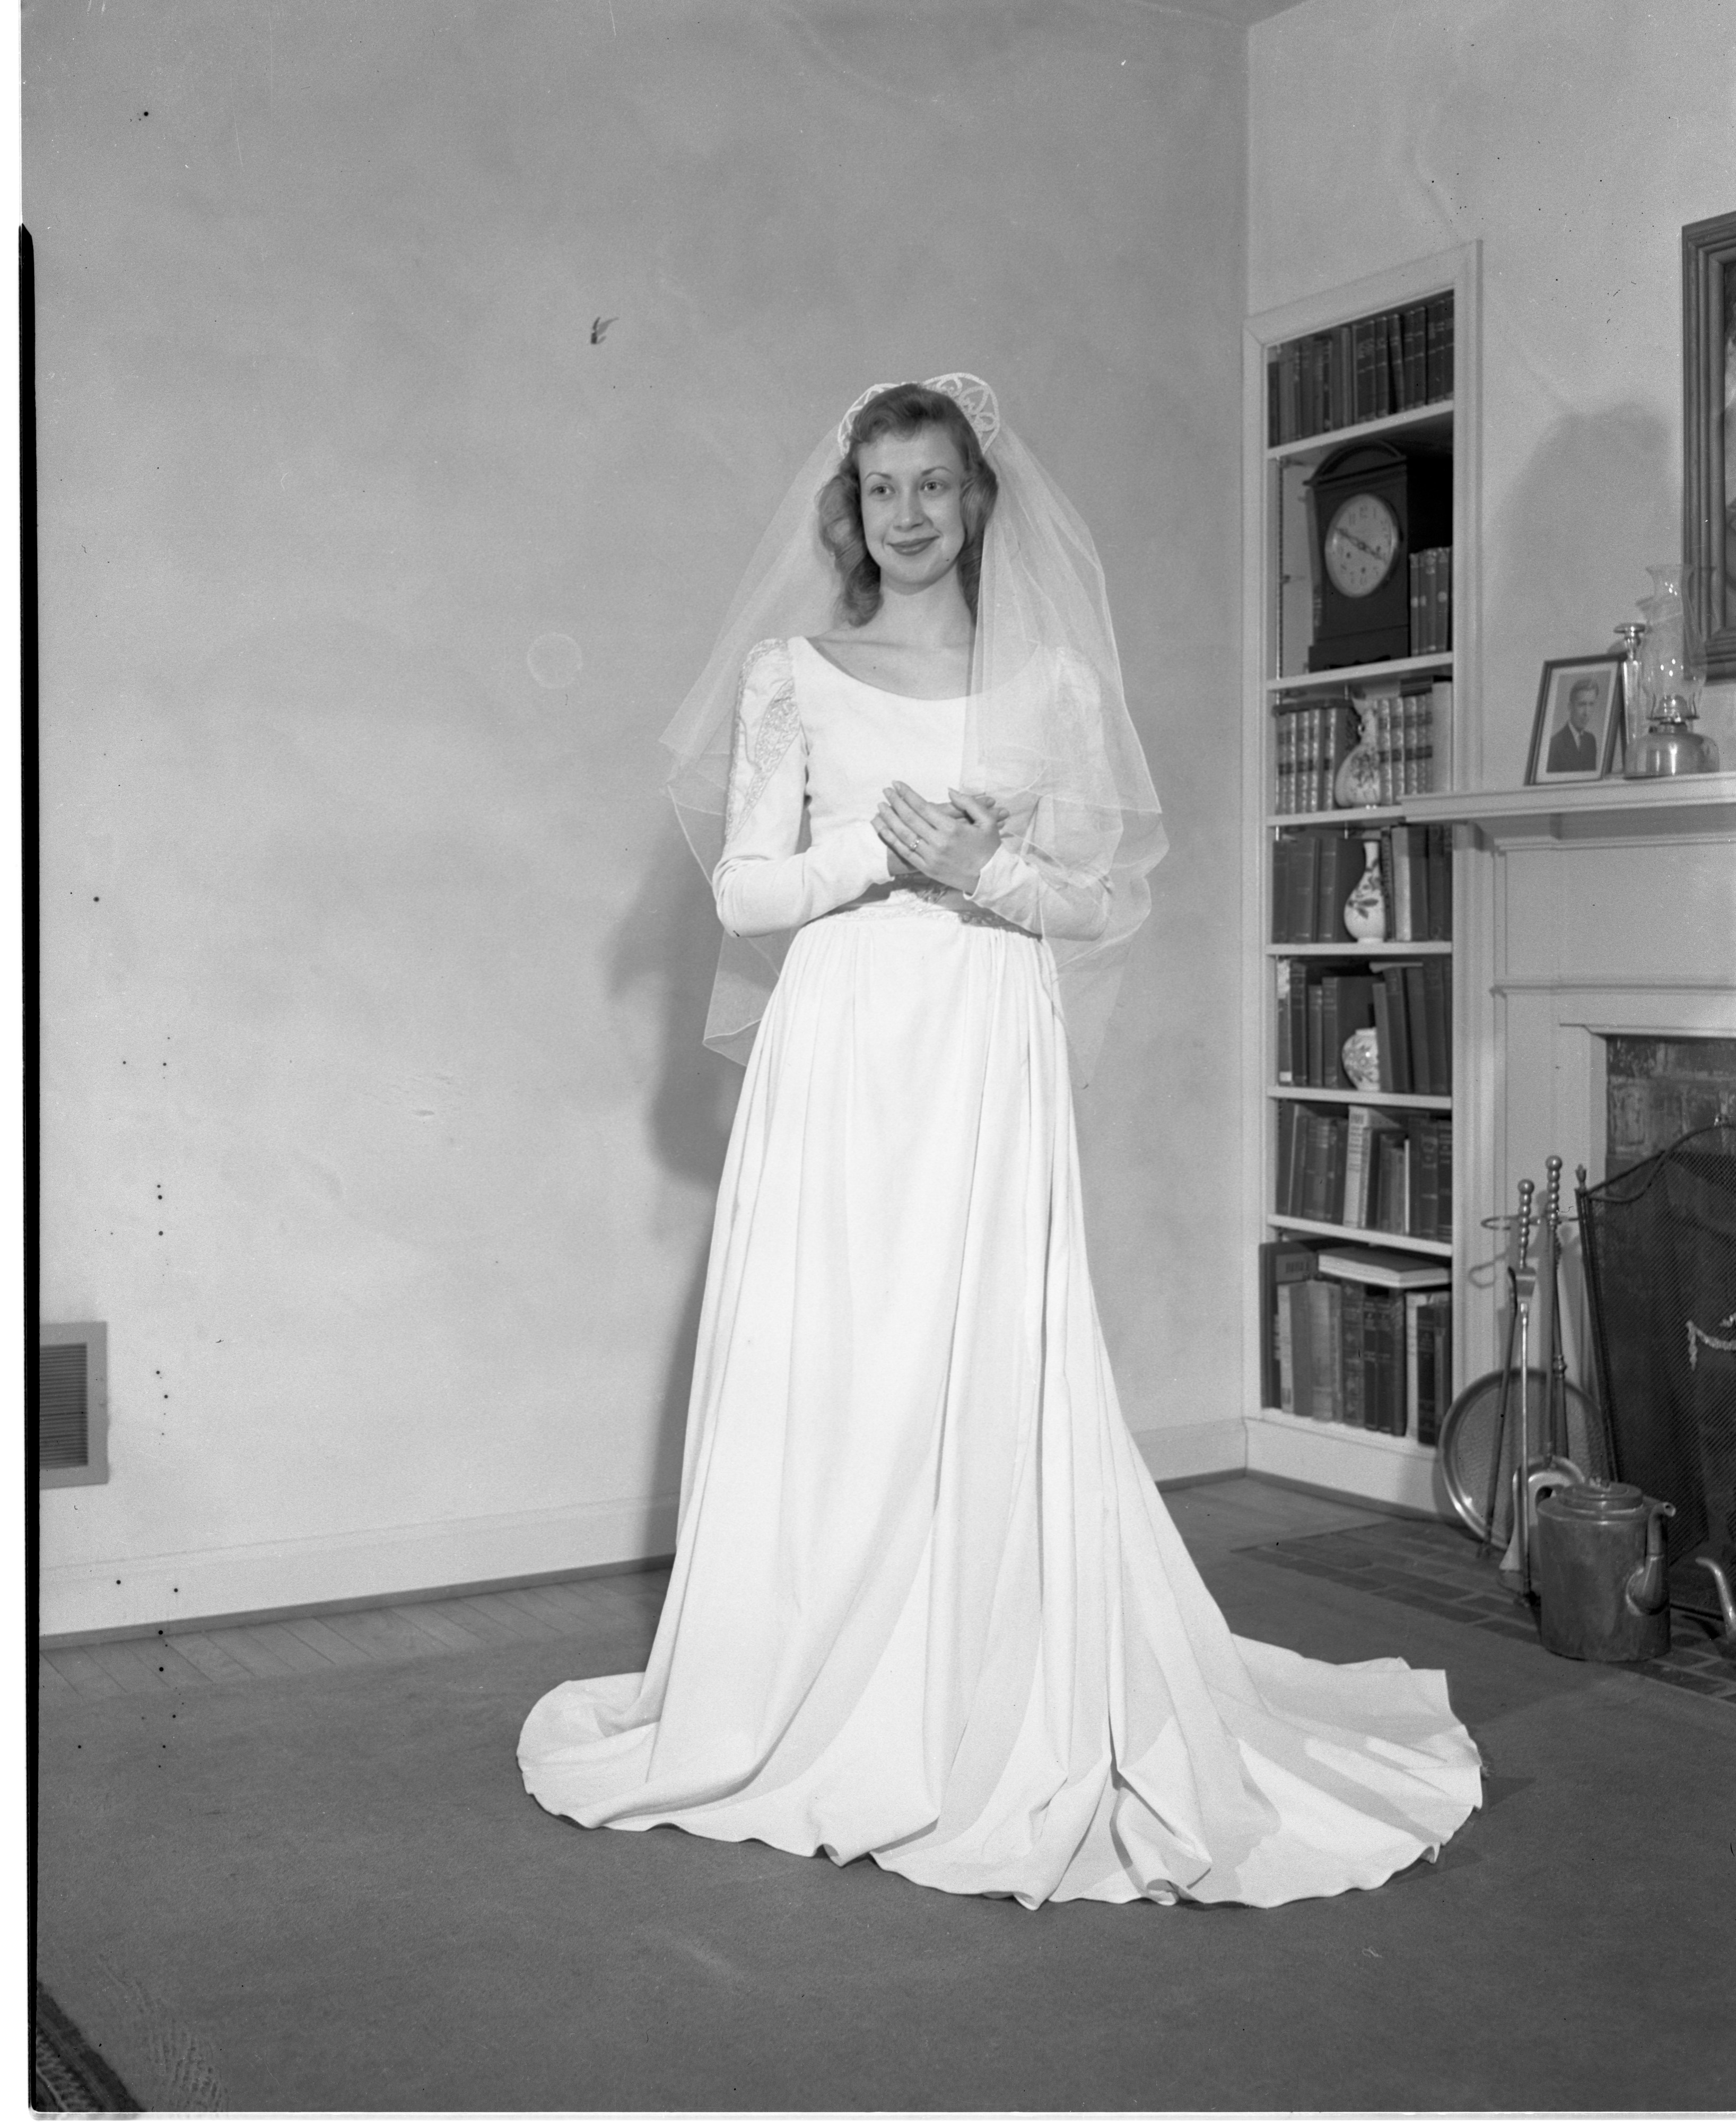 Ann Cook - Bride Of David Davis II, February 1947 image